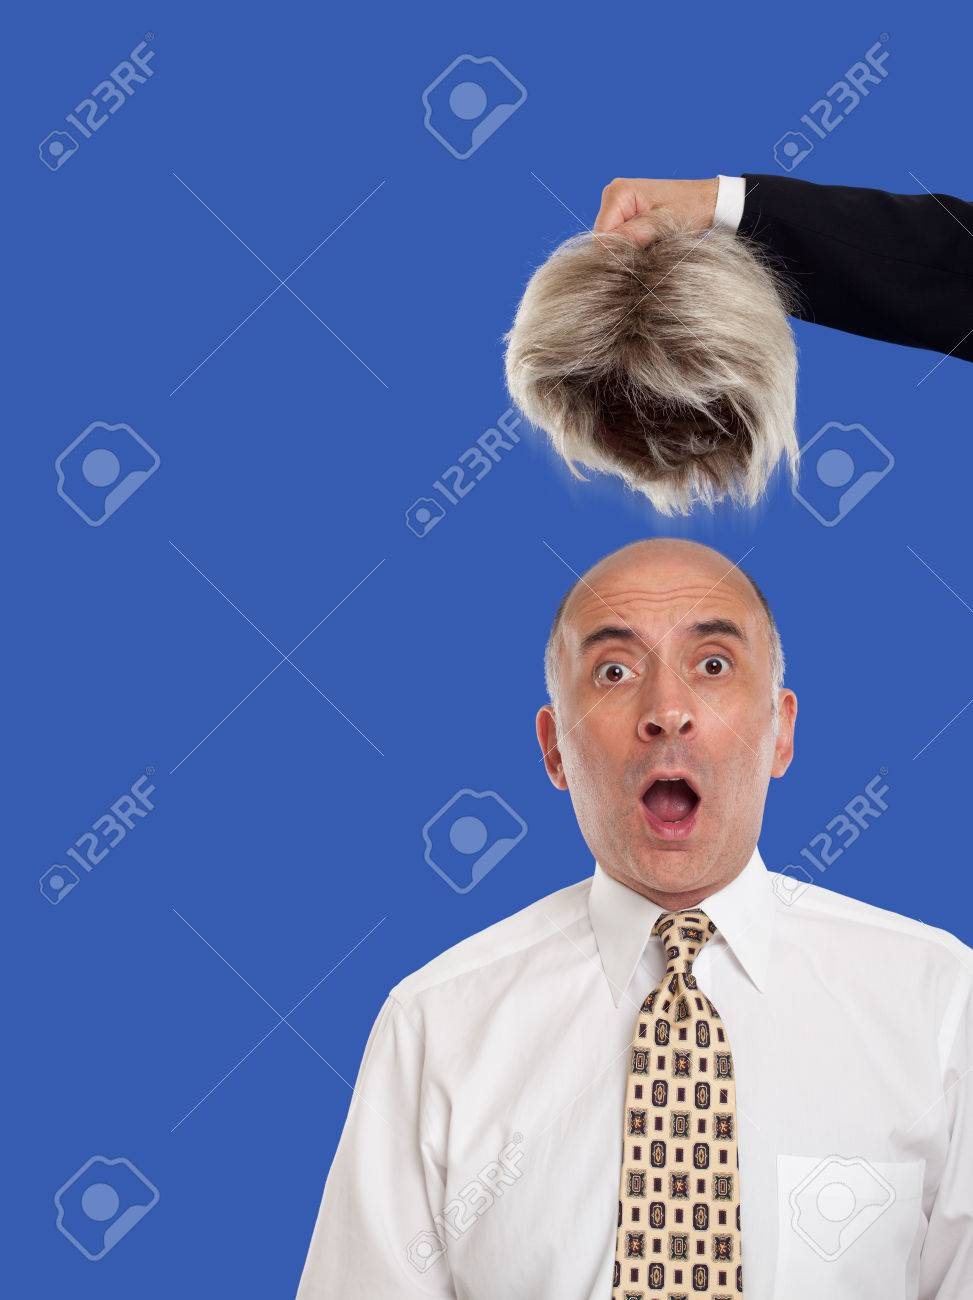 Bald man revealed by removing the toupee - 47767282